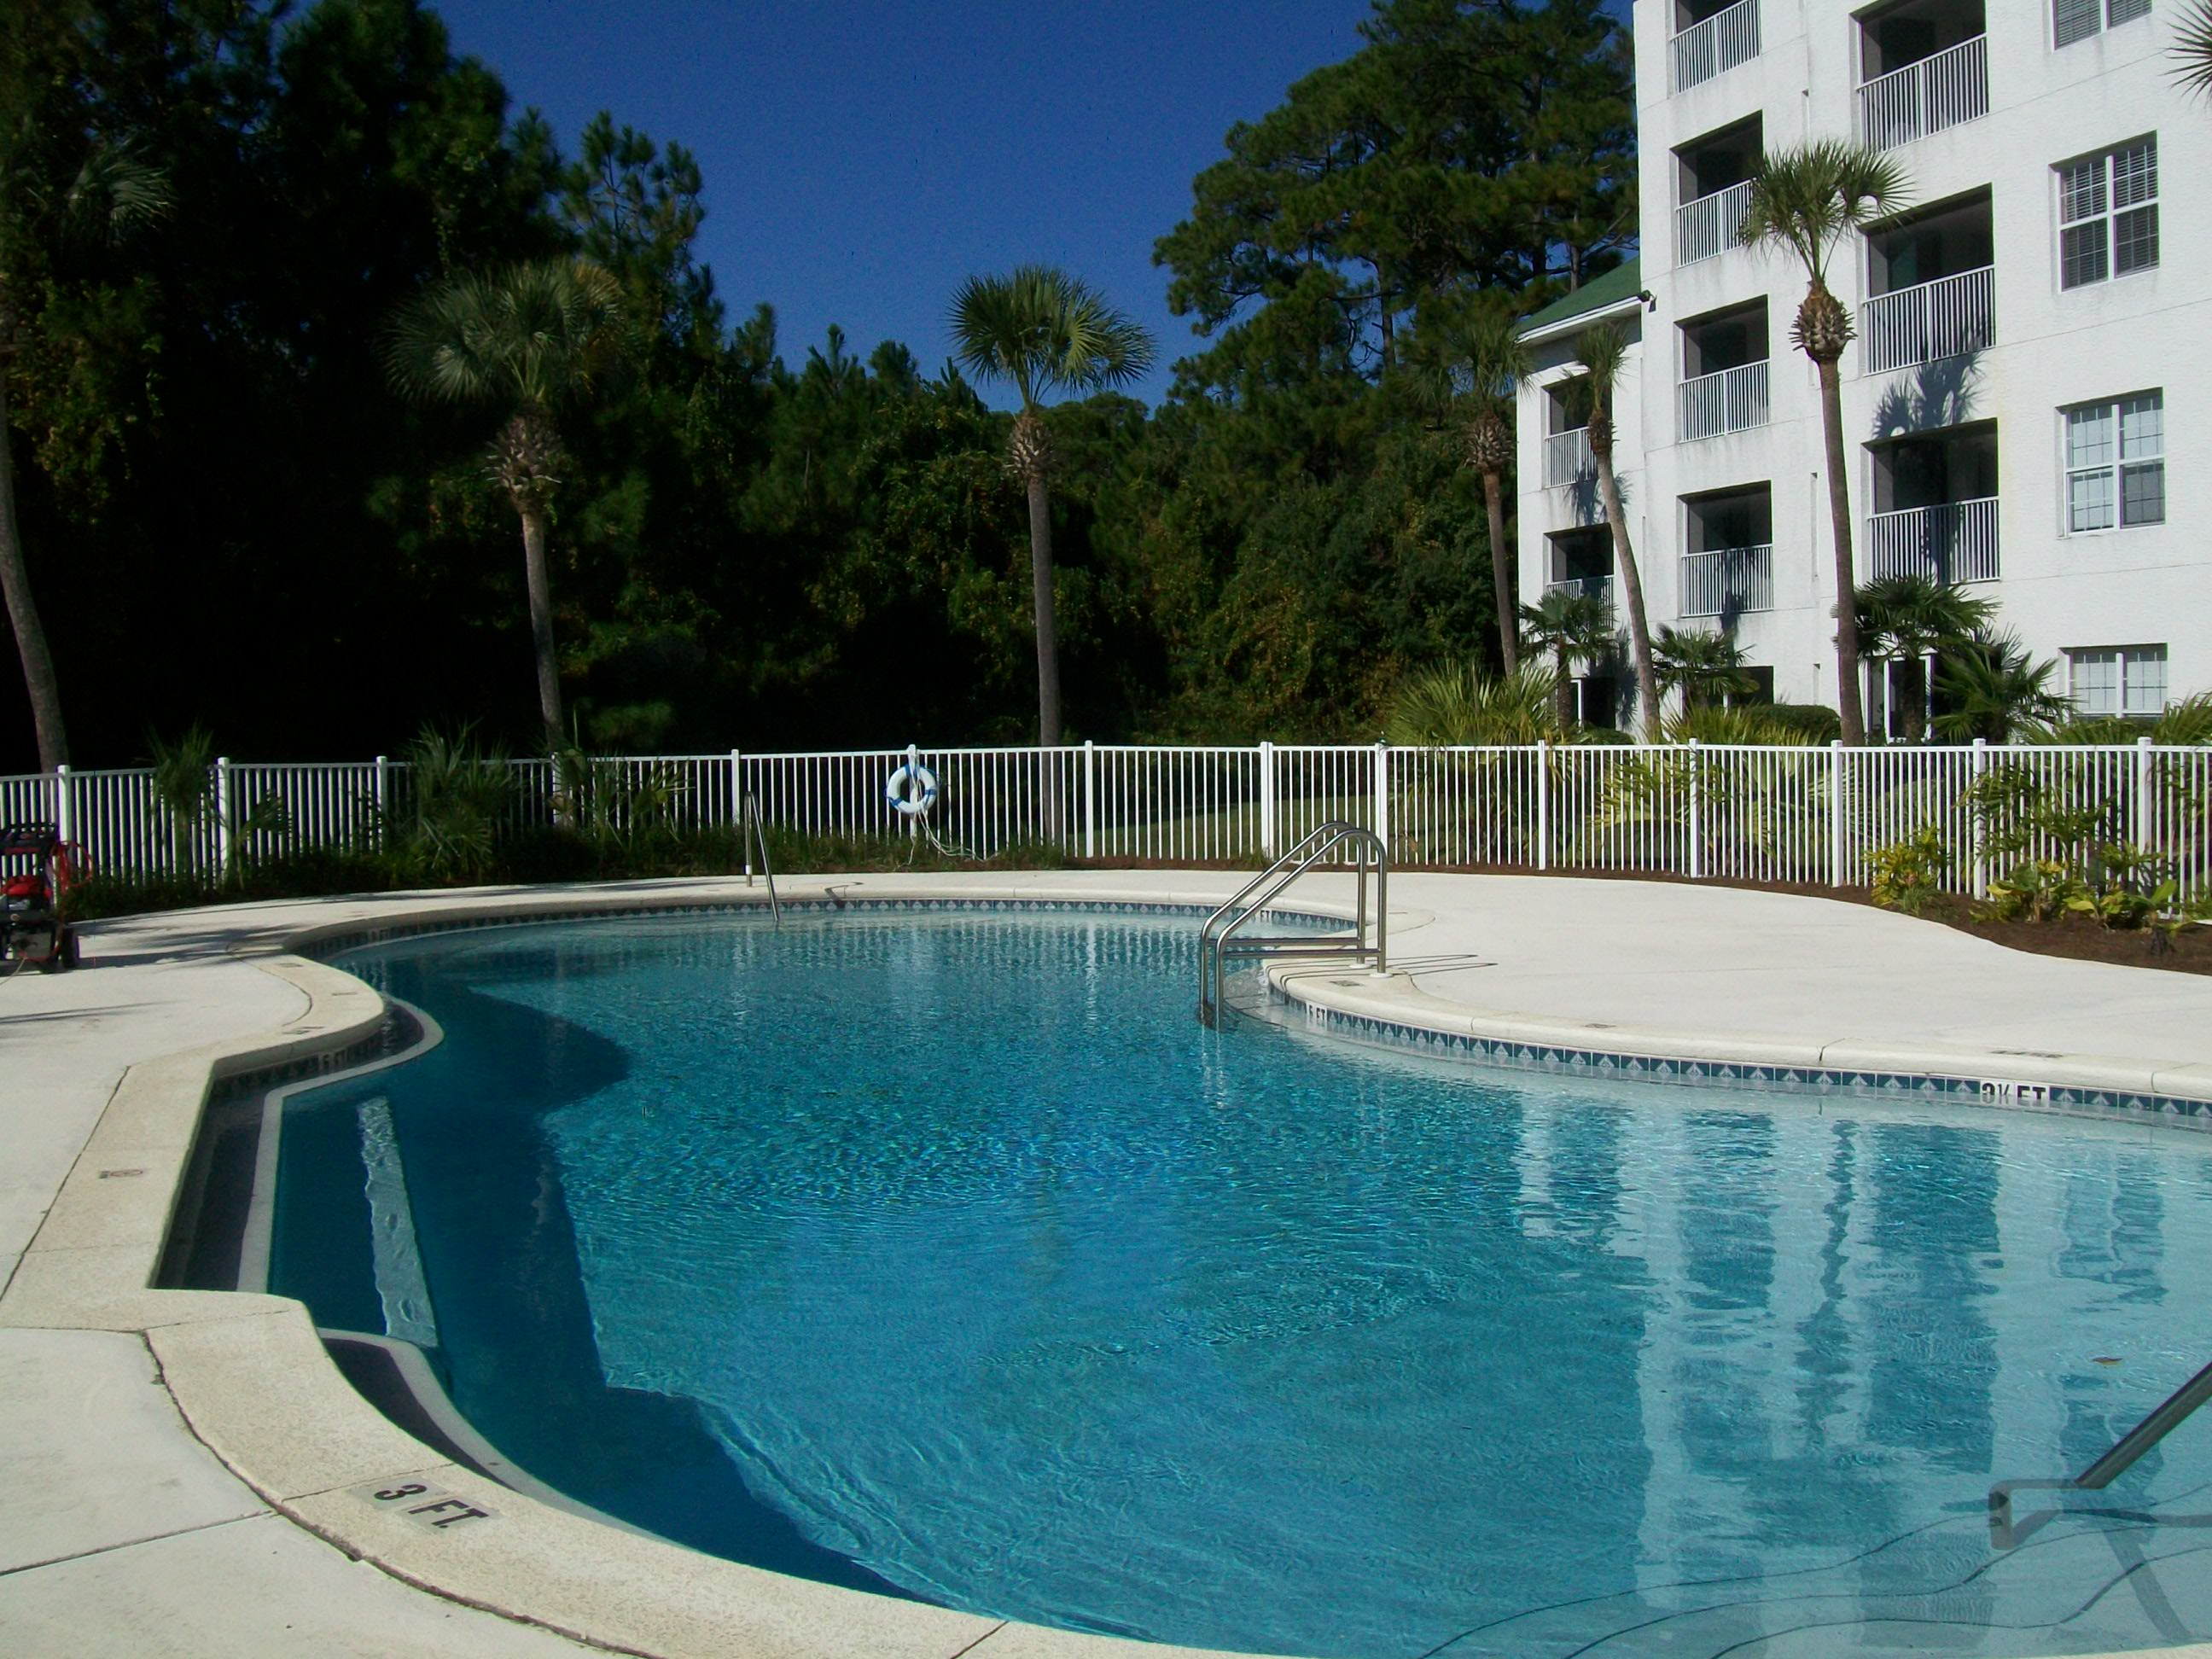 New in Niceville! - Southern Residential LeasingSouthern ...